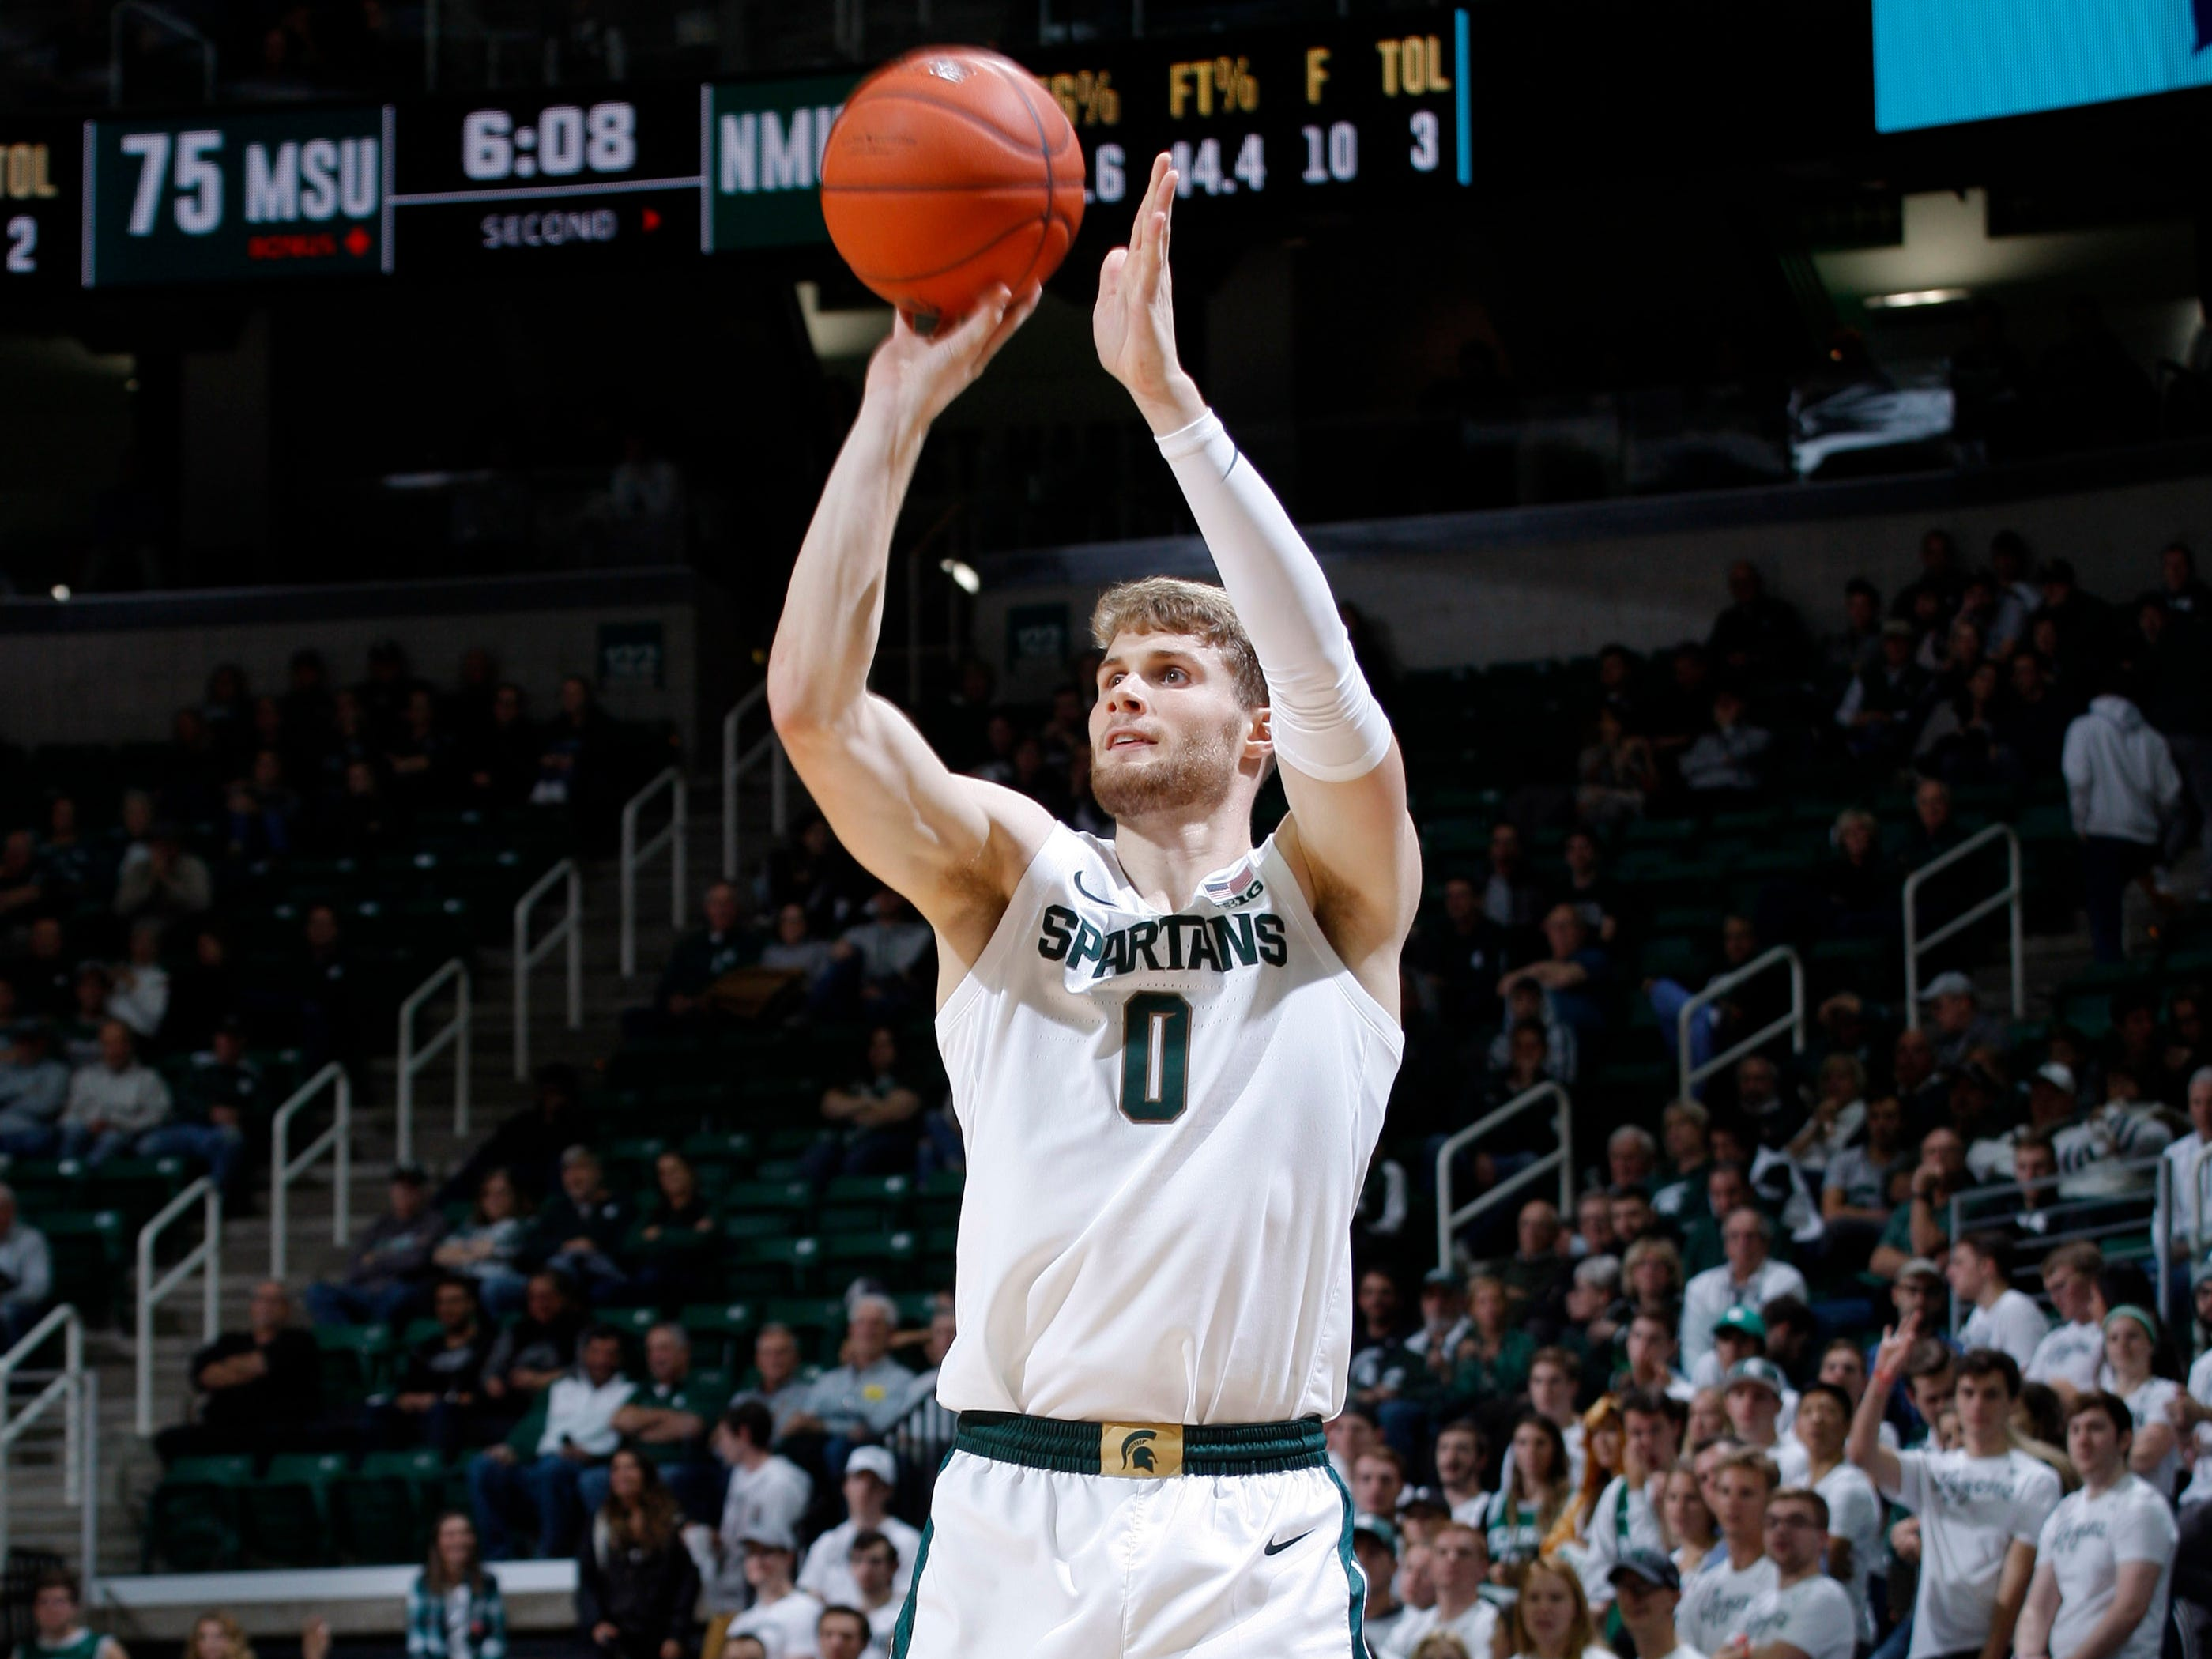 Michigan State's Kyle Ahrens shoots against Northern Michigan, Tuesday, Oct. 30, 2018, in East Lansing, Mich.